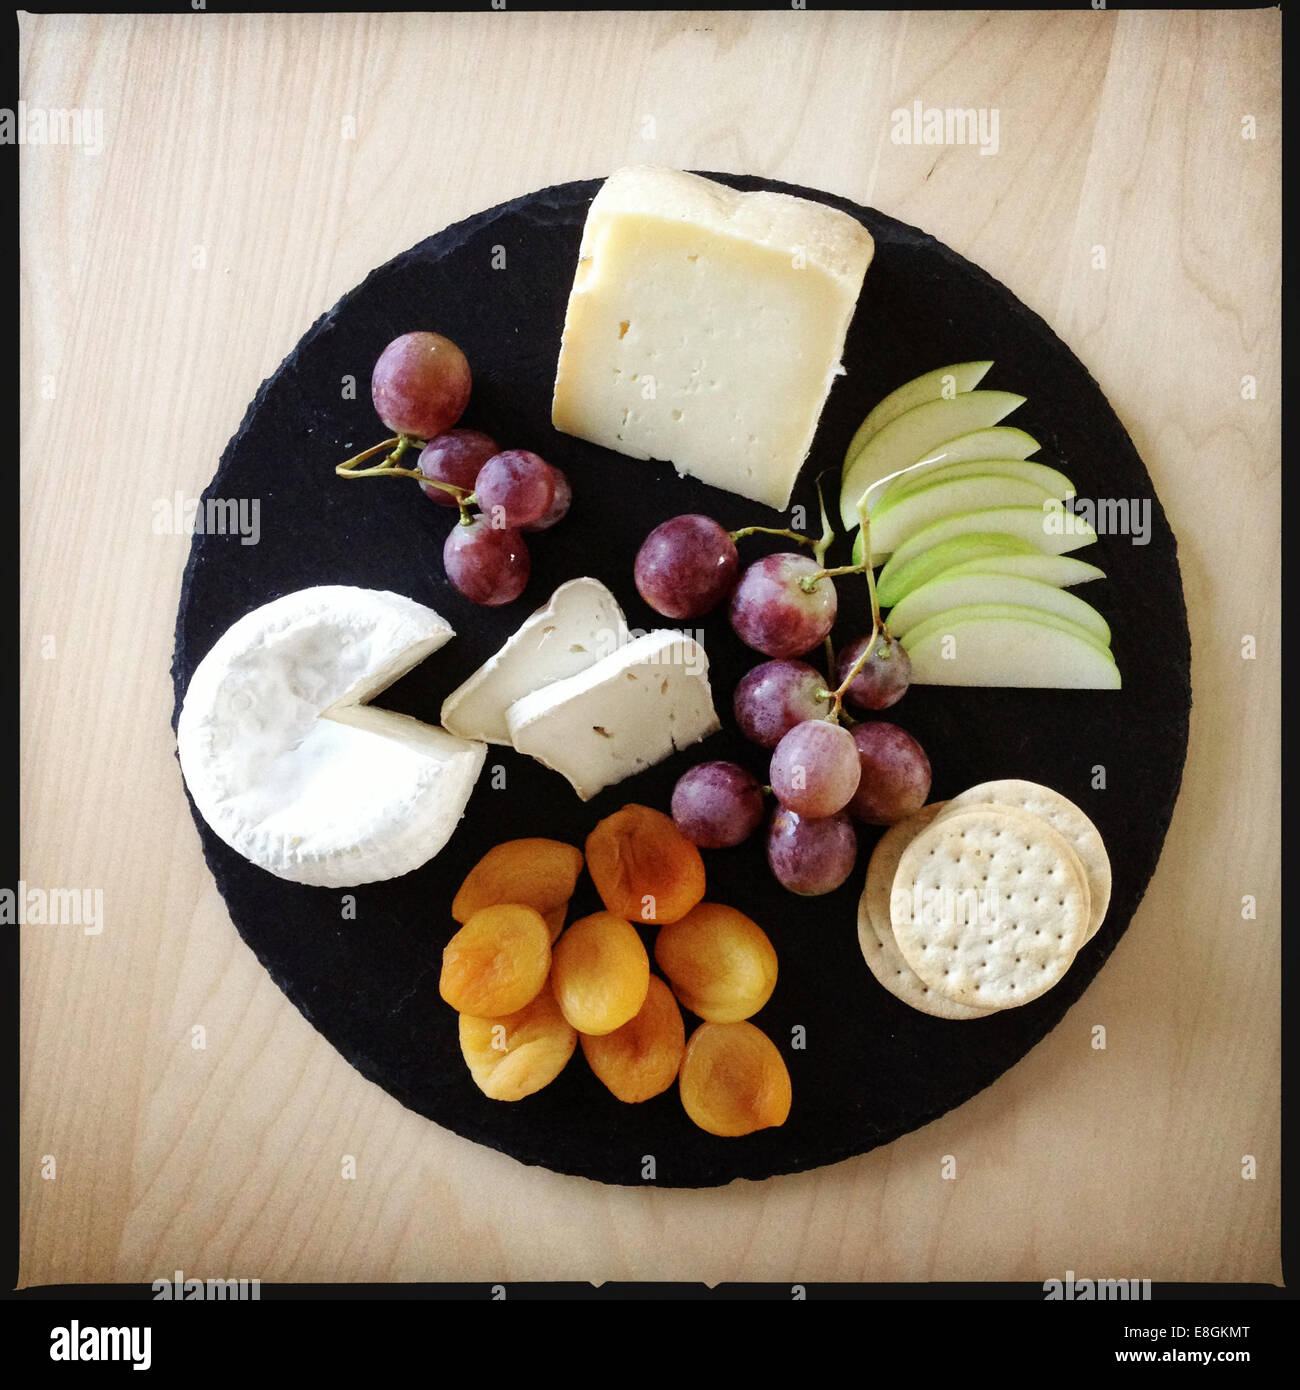 Italy Cheese Platter Cheese Apple Dried Apricots Crackers Stock Photo Alamy